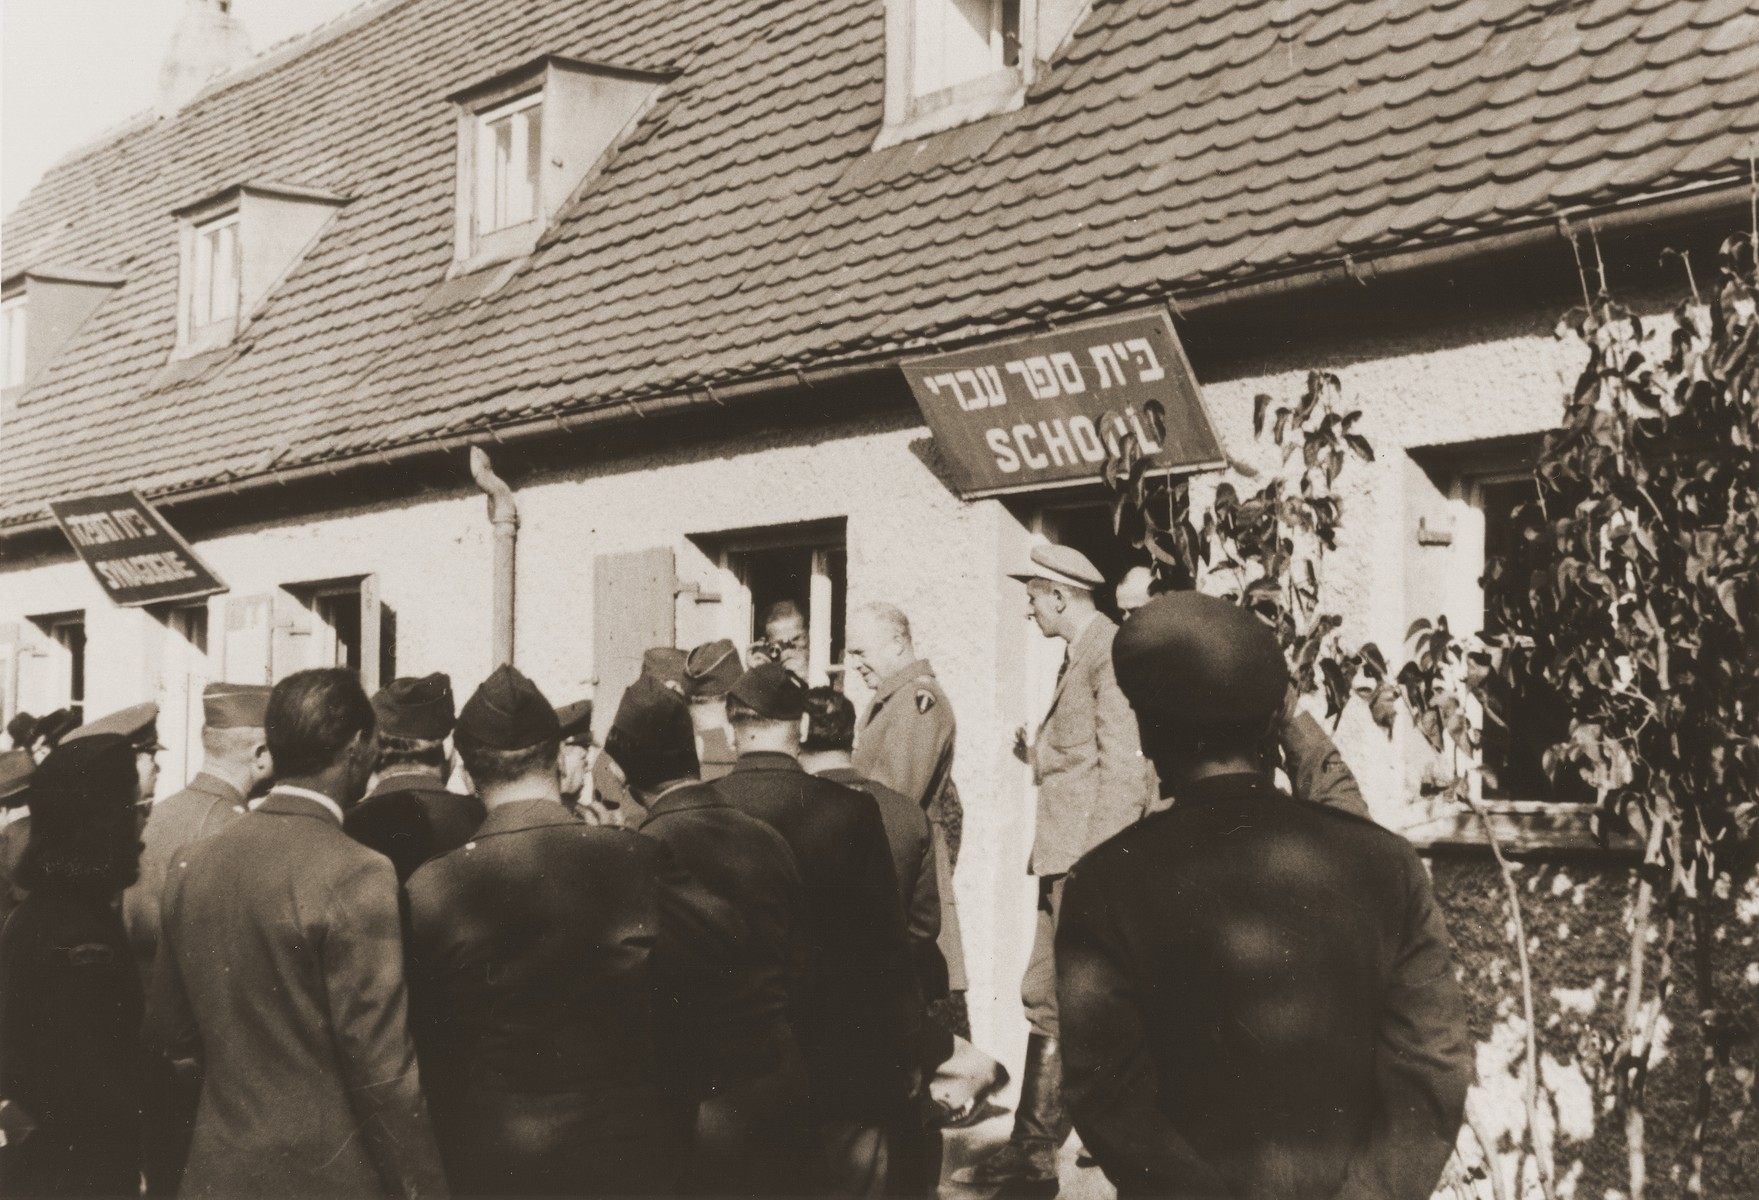 General Dwight Eisenhower visits the school and synagogue during an official tour of the Neu Freimann displaced persons camp.